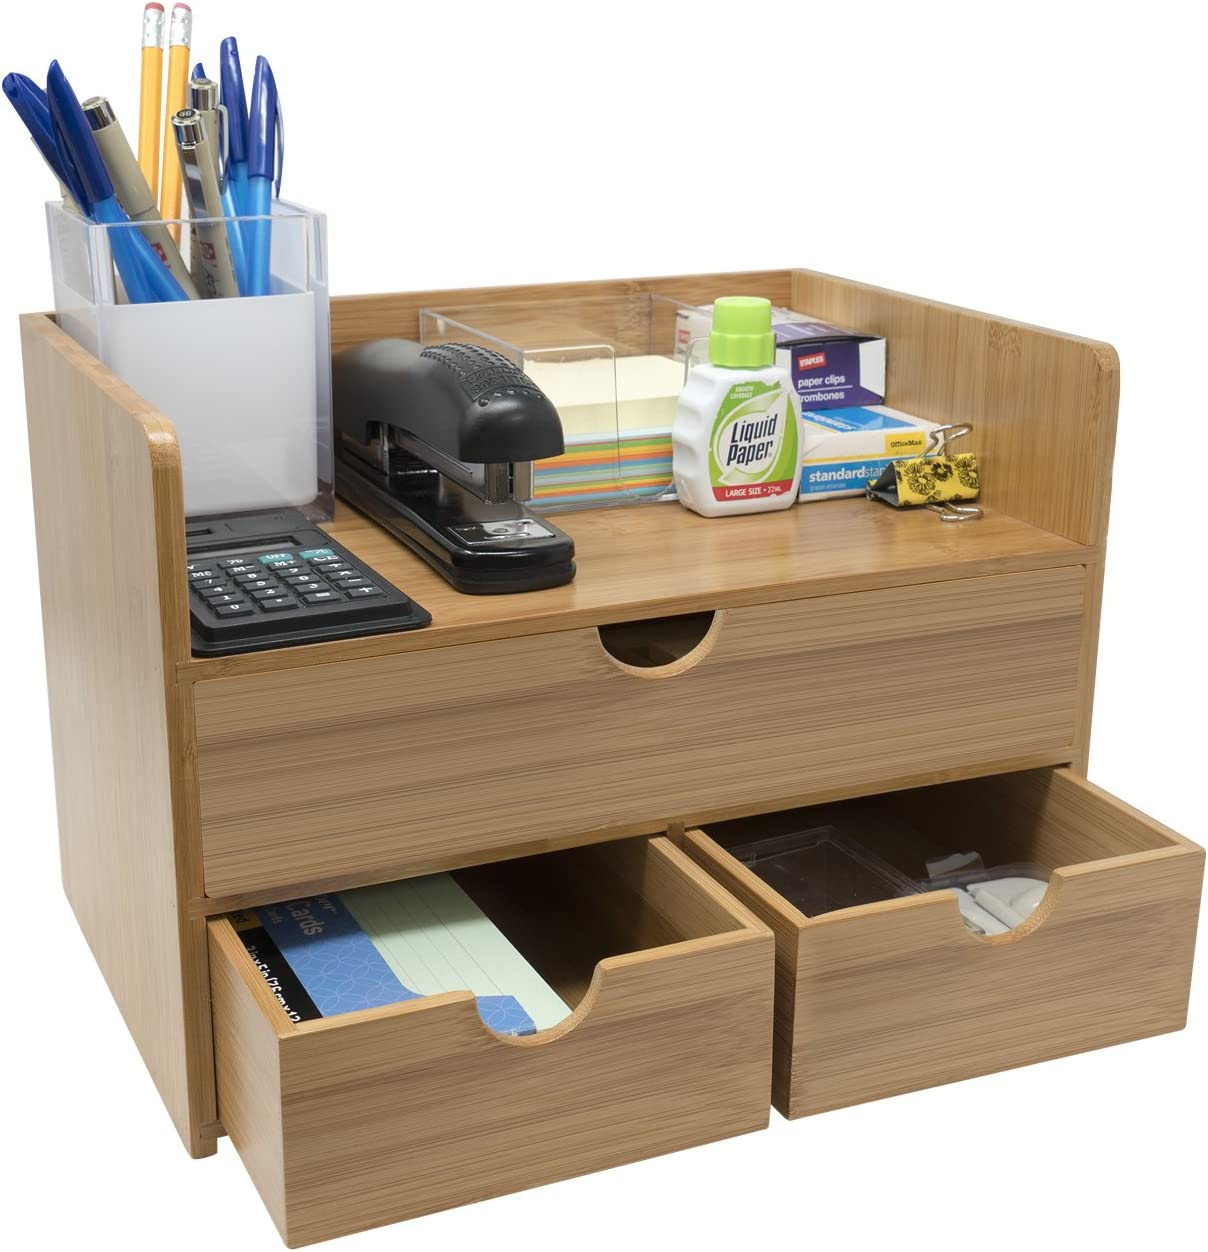 Sorbus 33-Tier Bamboo Shelf Organizer for Desk with Drawers — Mini Desk  Storage for Office Supplies, Toiletries, Crafts, etc — Great for Desk,  Vanity,